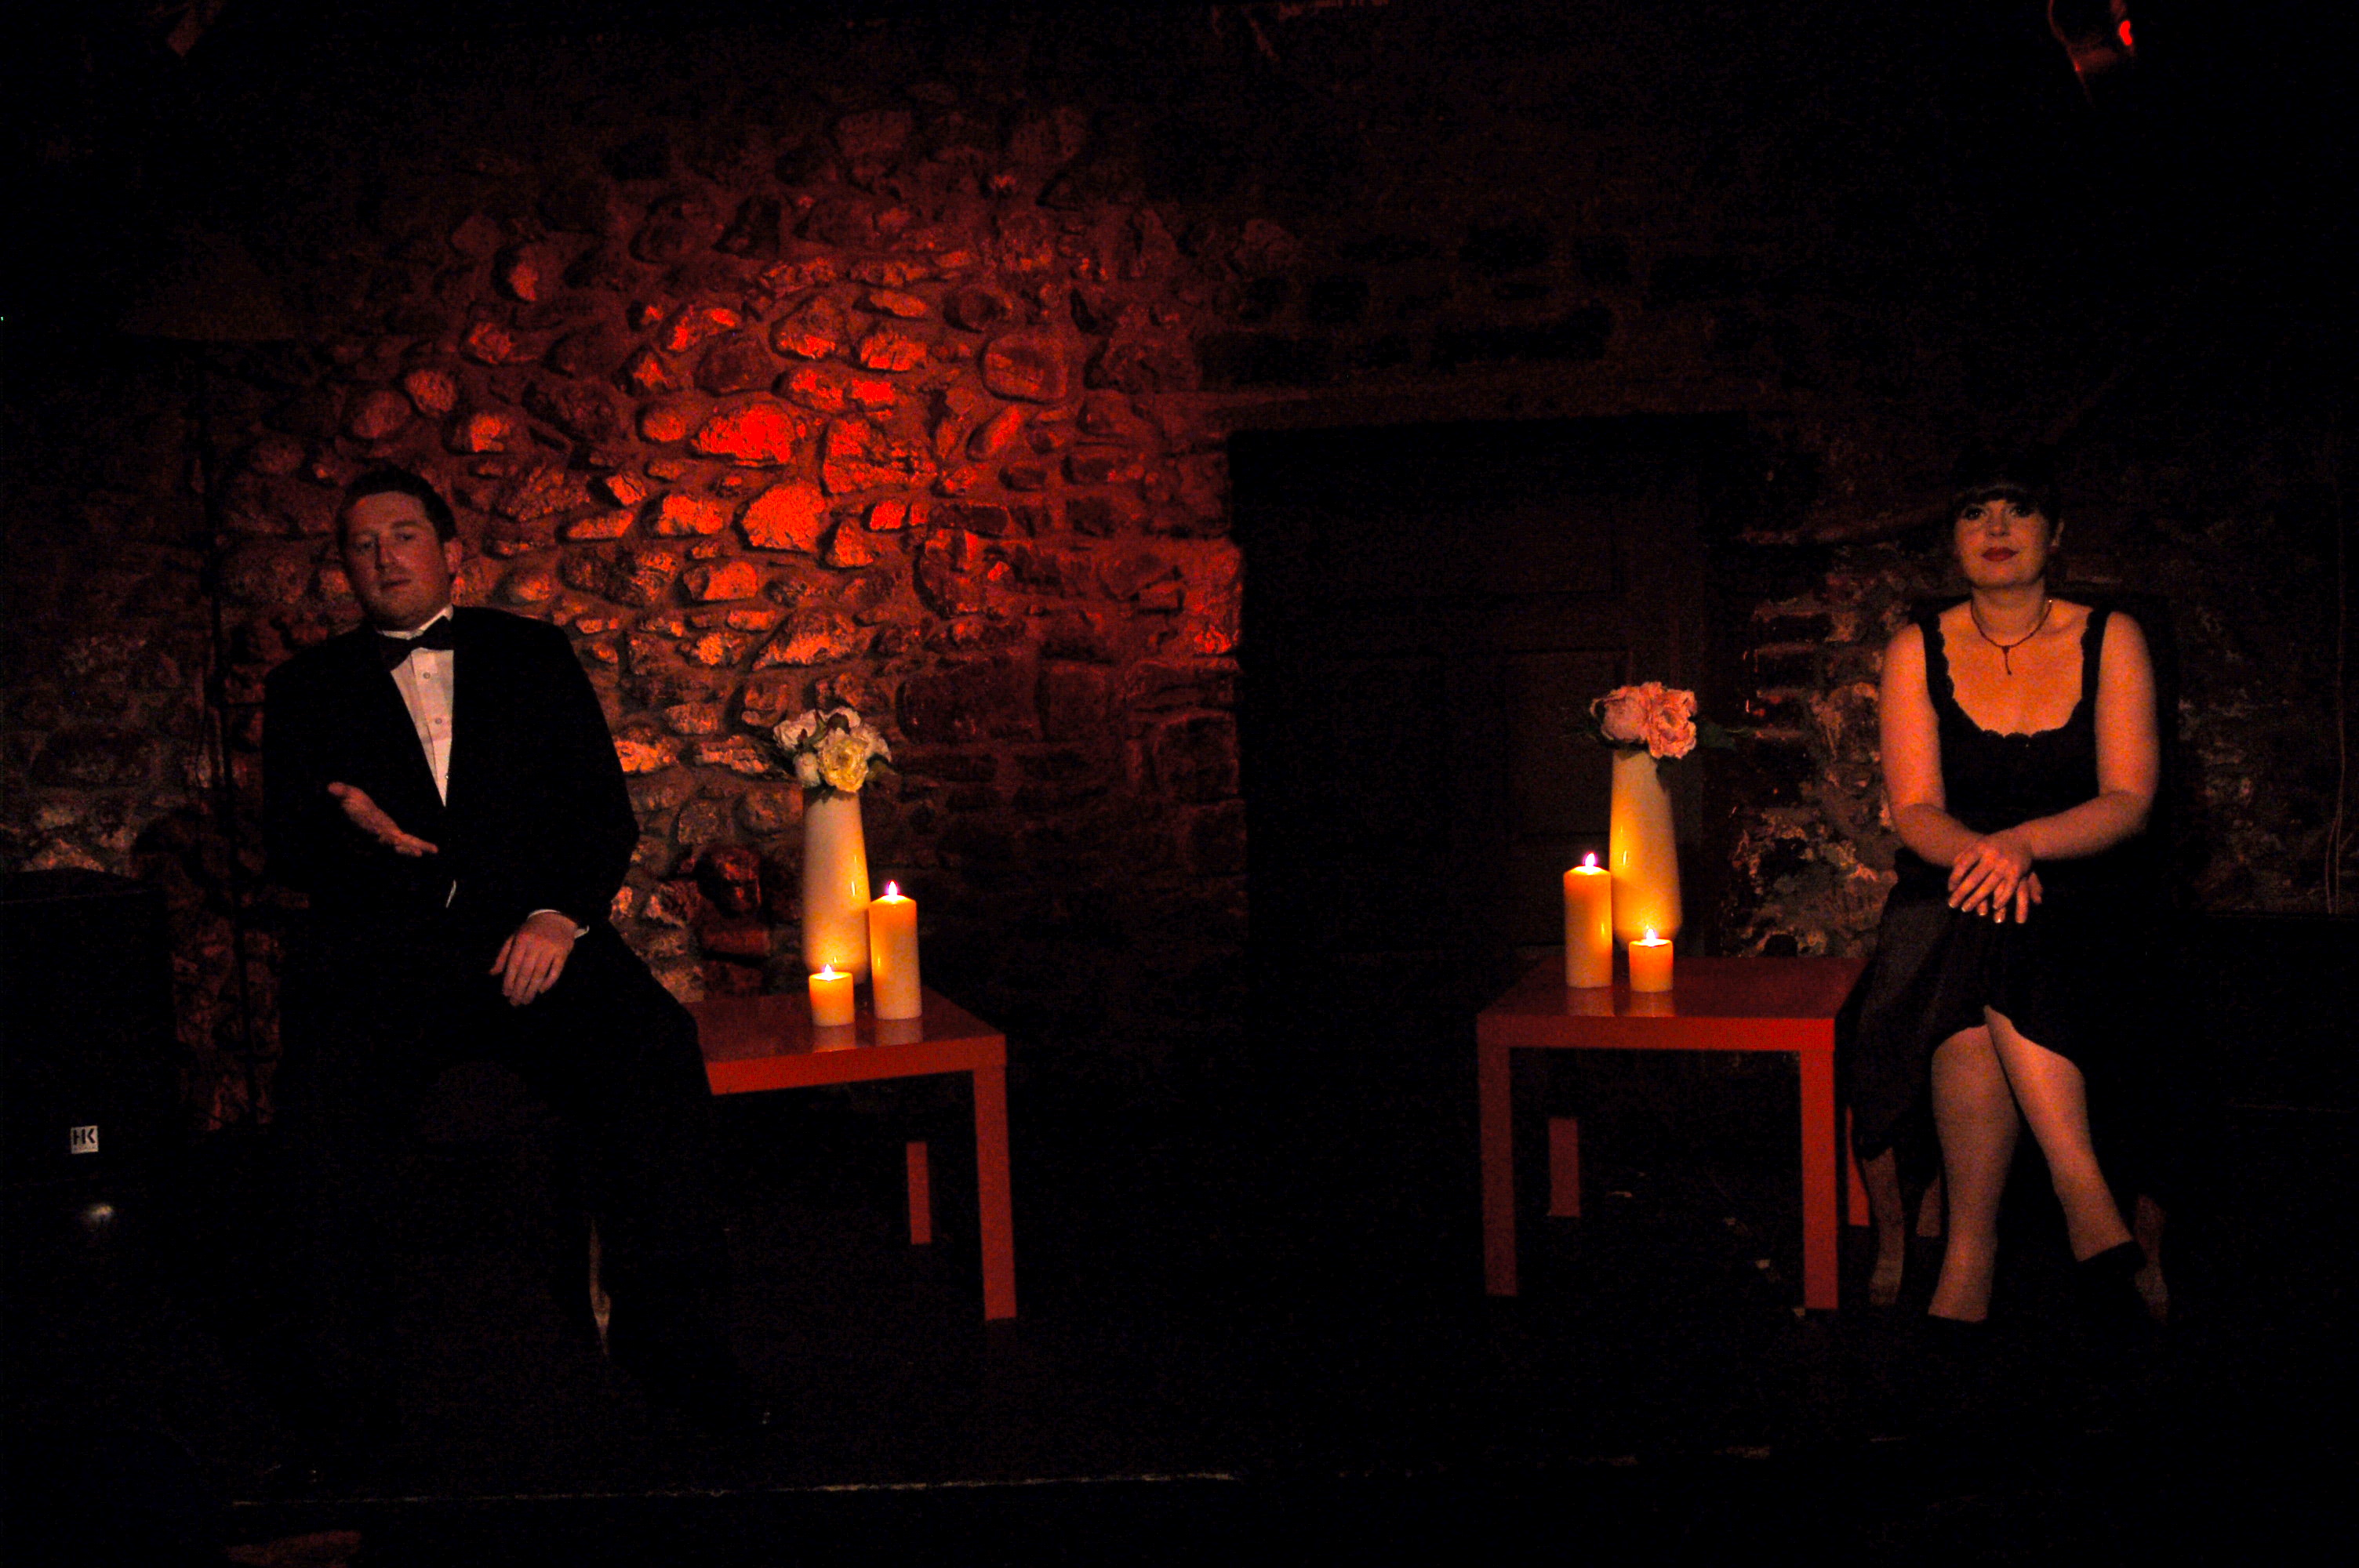 The Darker Side Of Devious Theatre